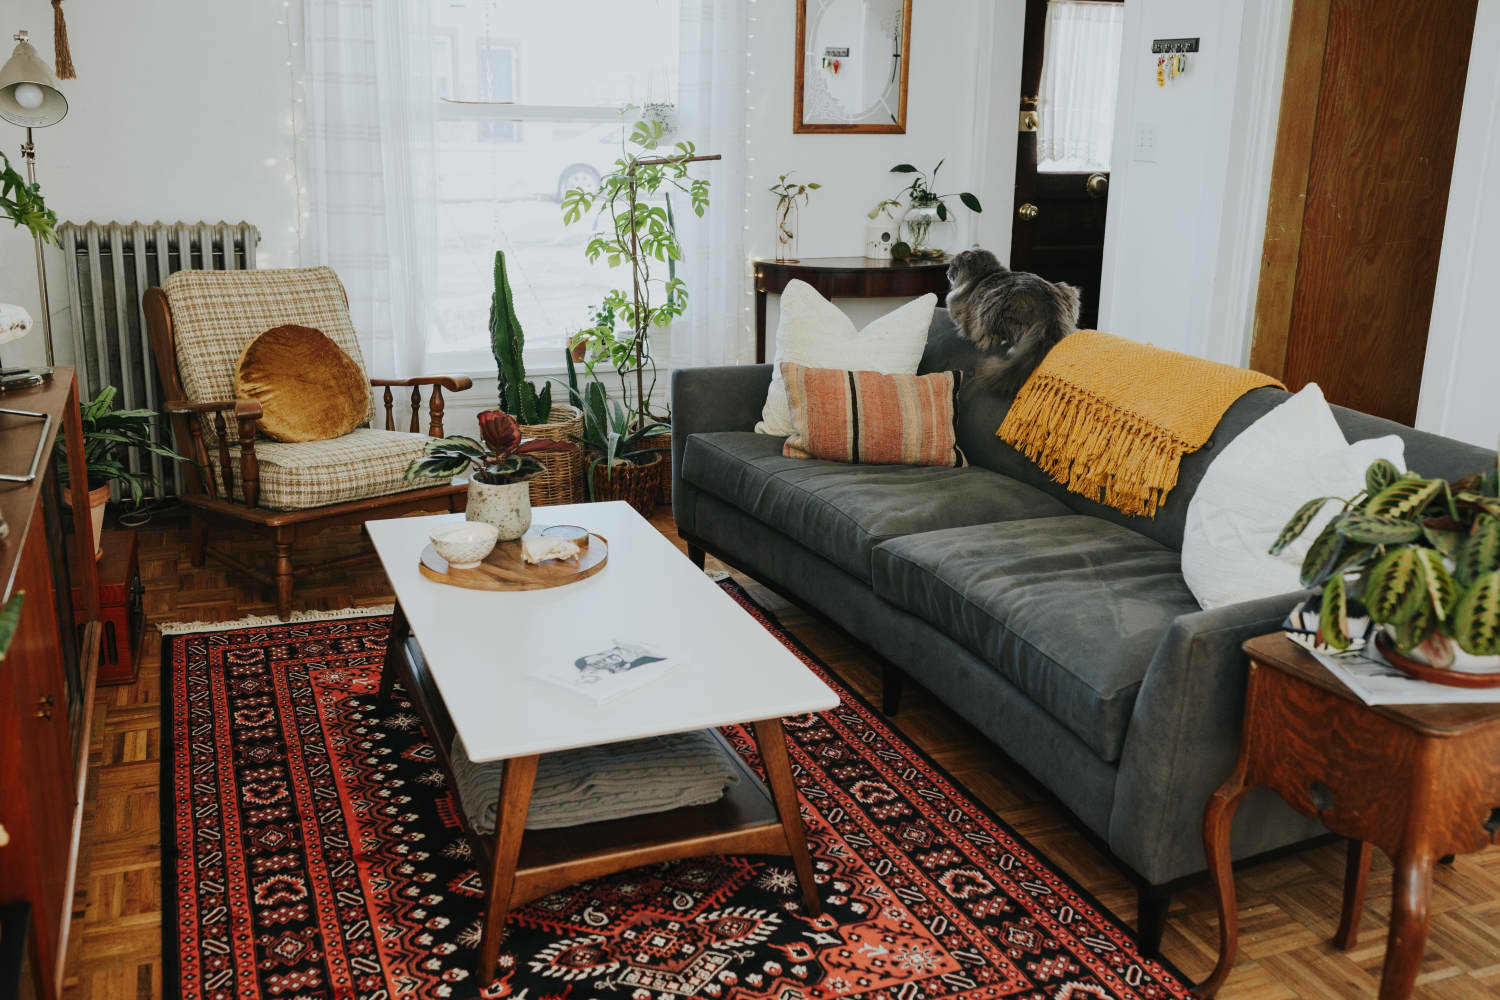 The Best Apartment Hunting Advice, According To Reddit ...